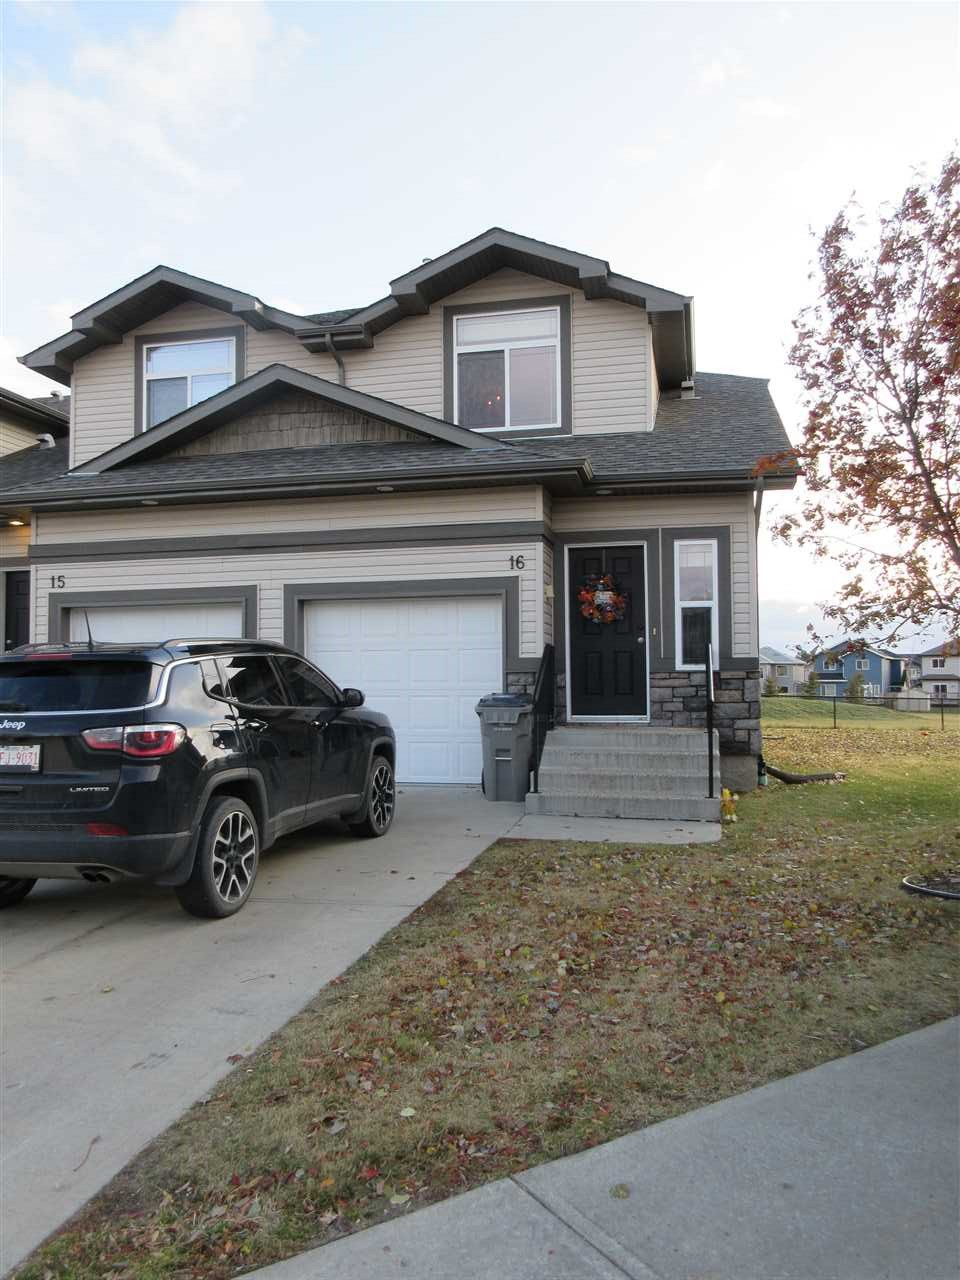 FEATURED LISTING: 16 9511 102 Avenue Morinville